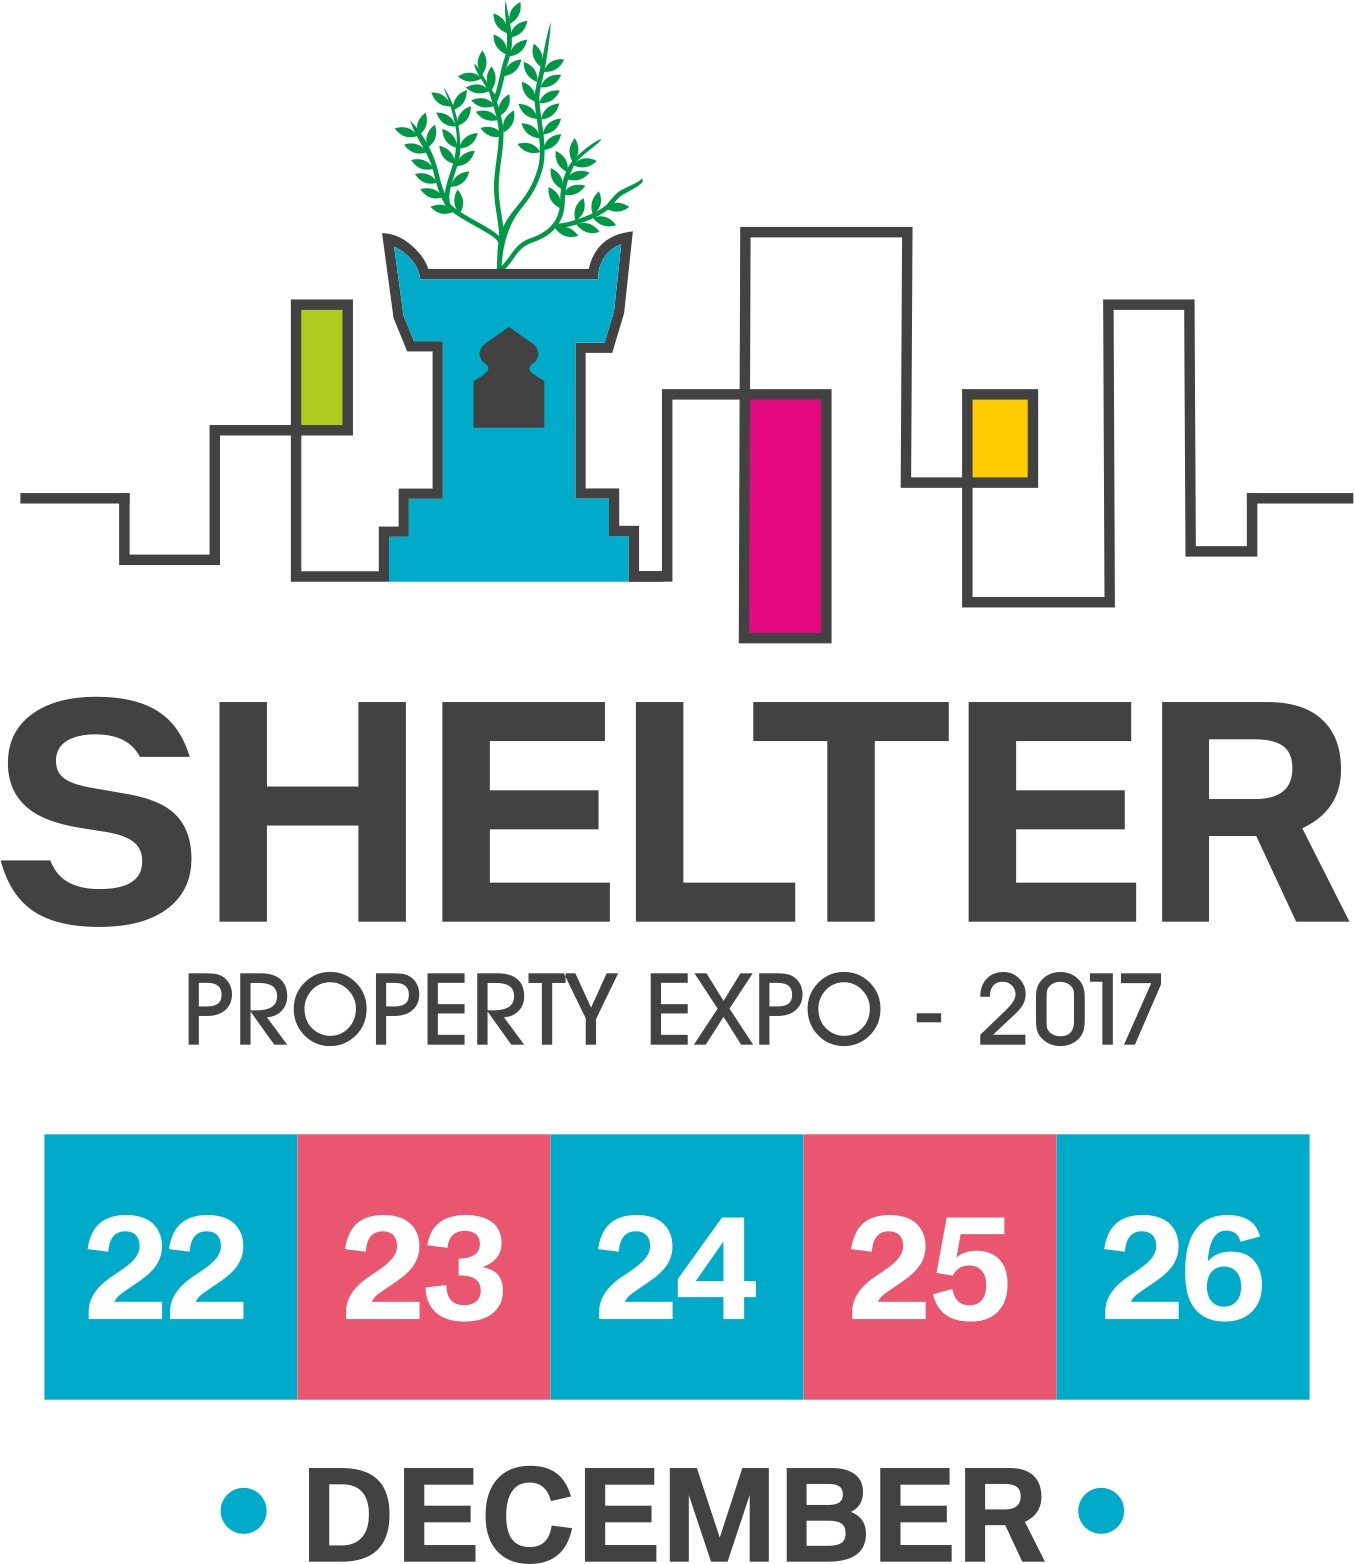 Shelter Property Expo 2017, Nashik, Maharashtra, India